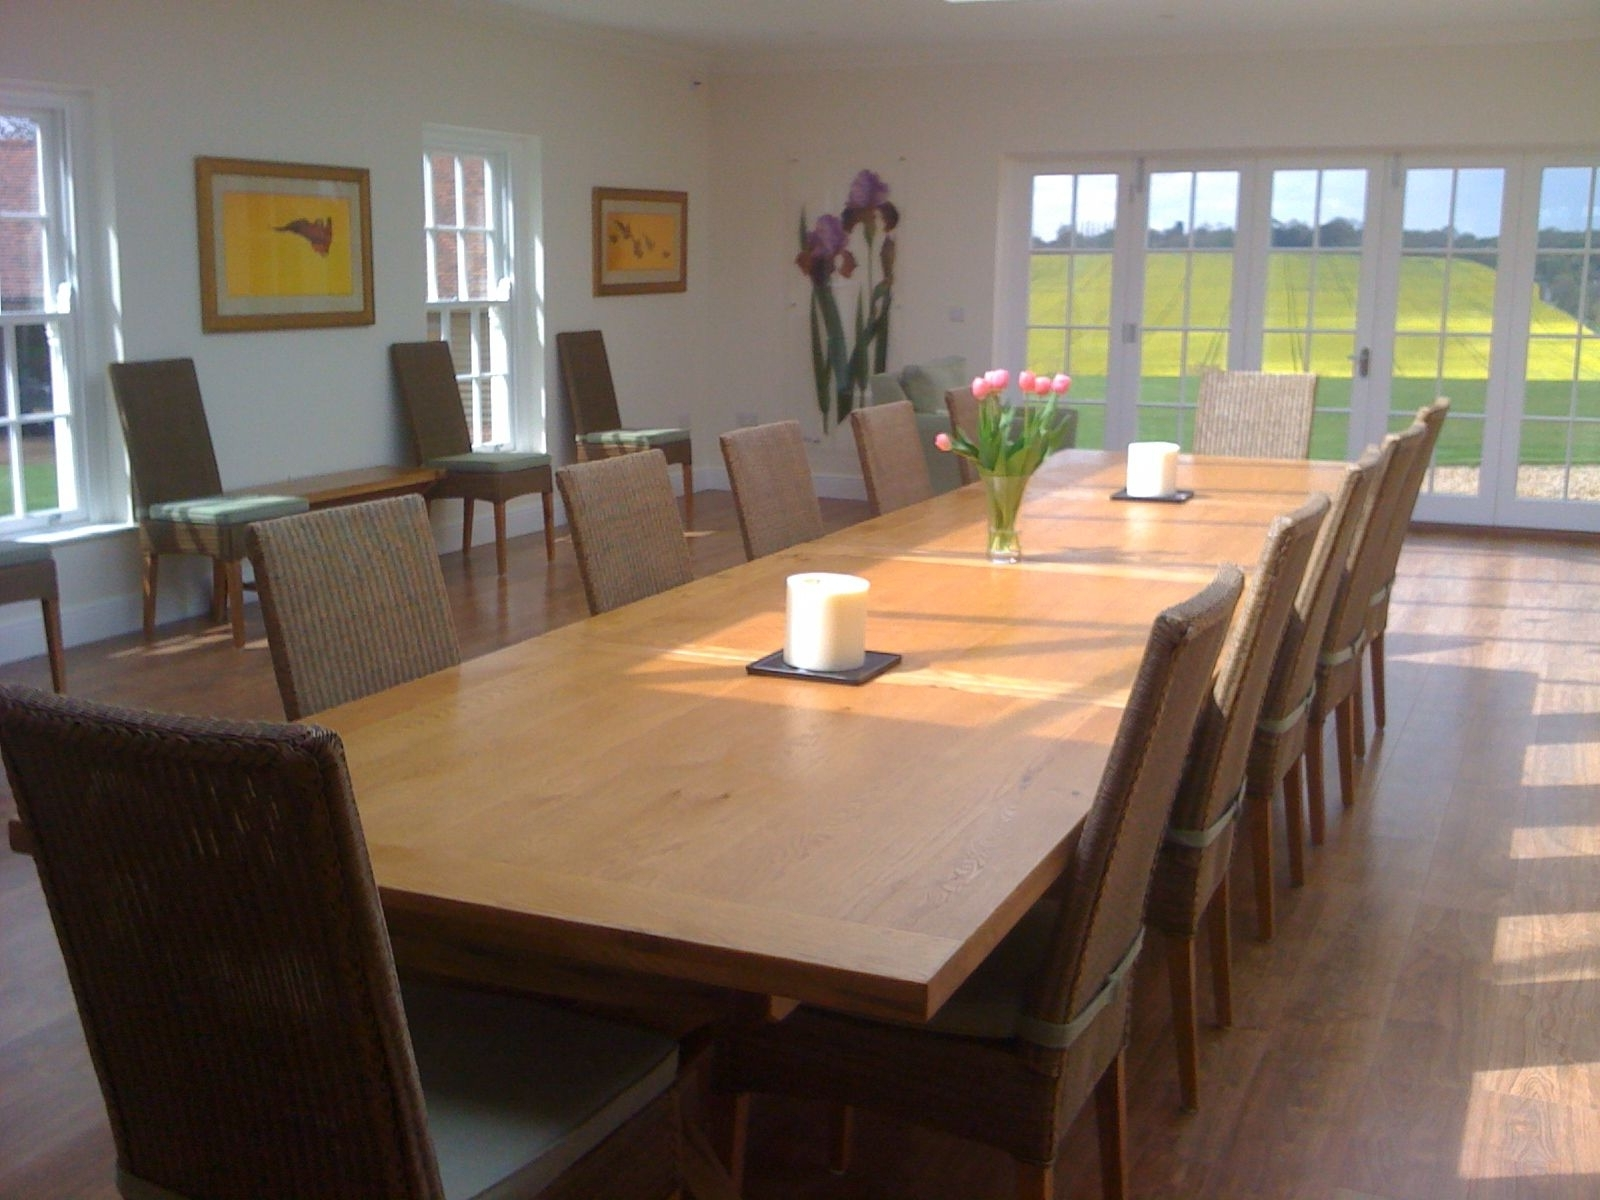 Recent Large Dining Table, Large Oak Table, Huge Dining Table, 14 Seater Within Extending Dining Tables With 14 Seats (View 6 of 25)